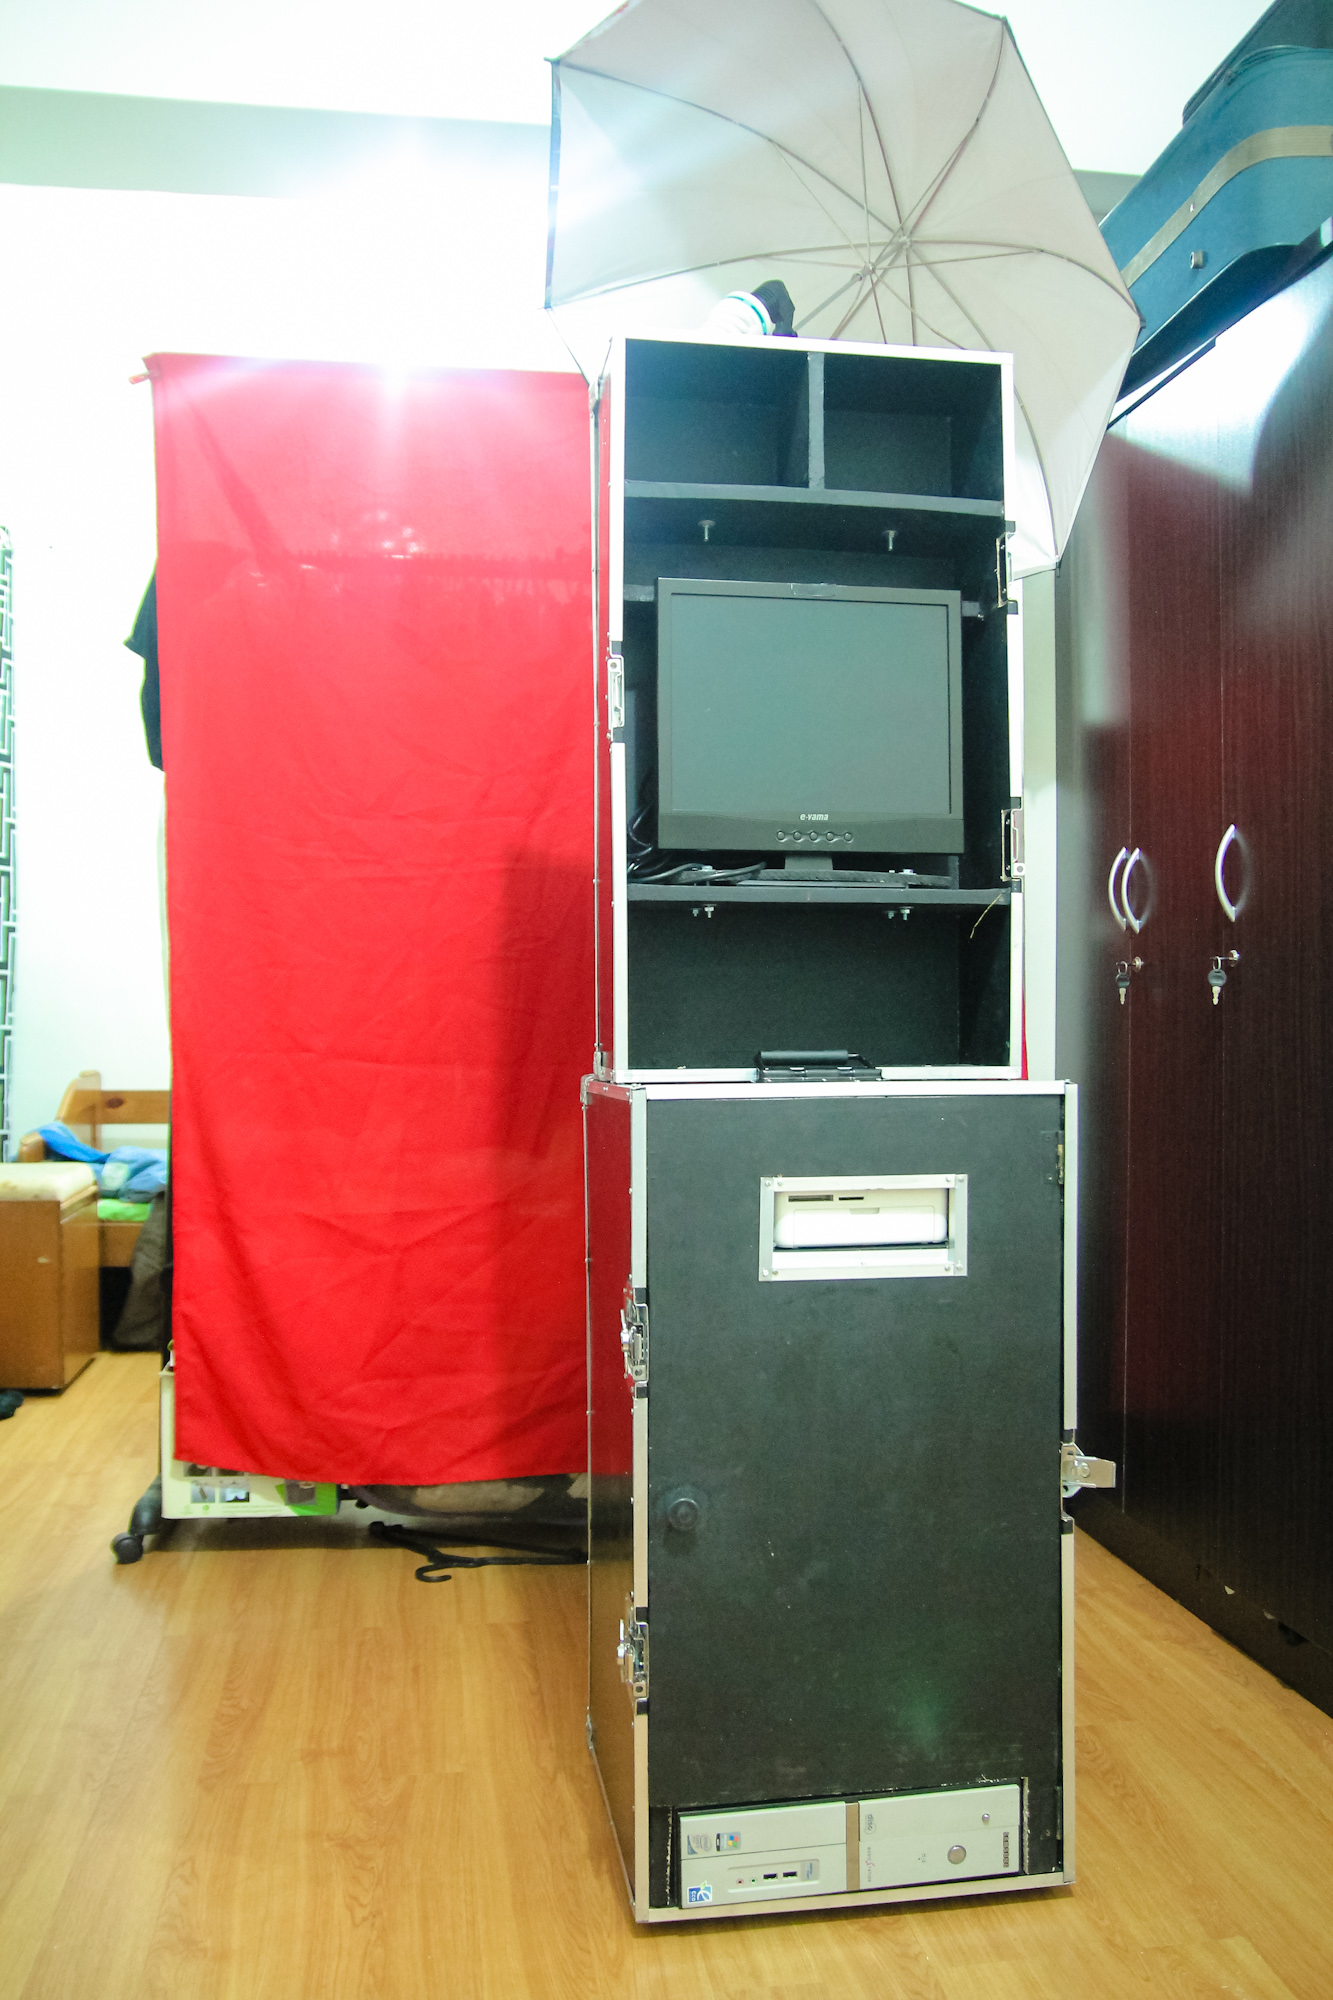 Photobooth Business Complete Package as low as 56,000 Pesos Only!